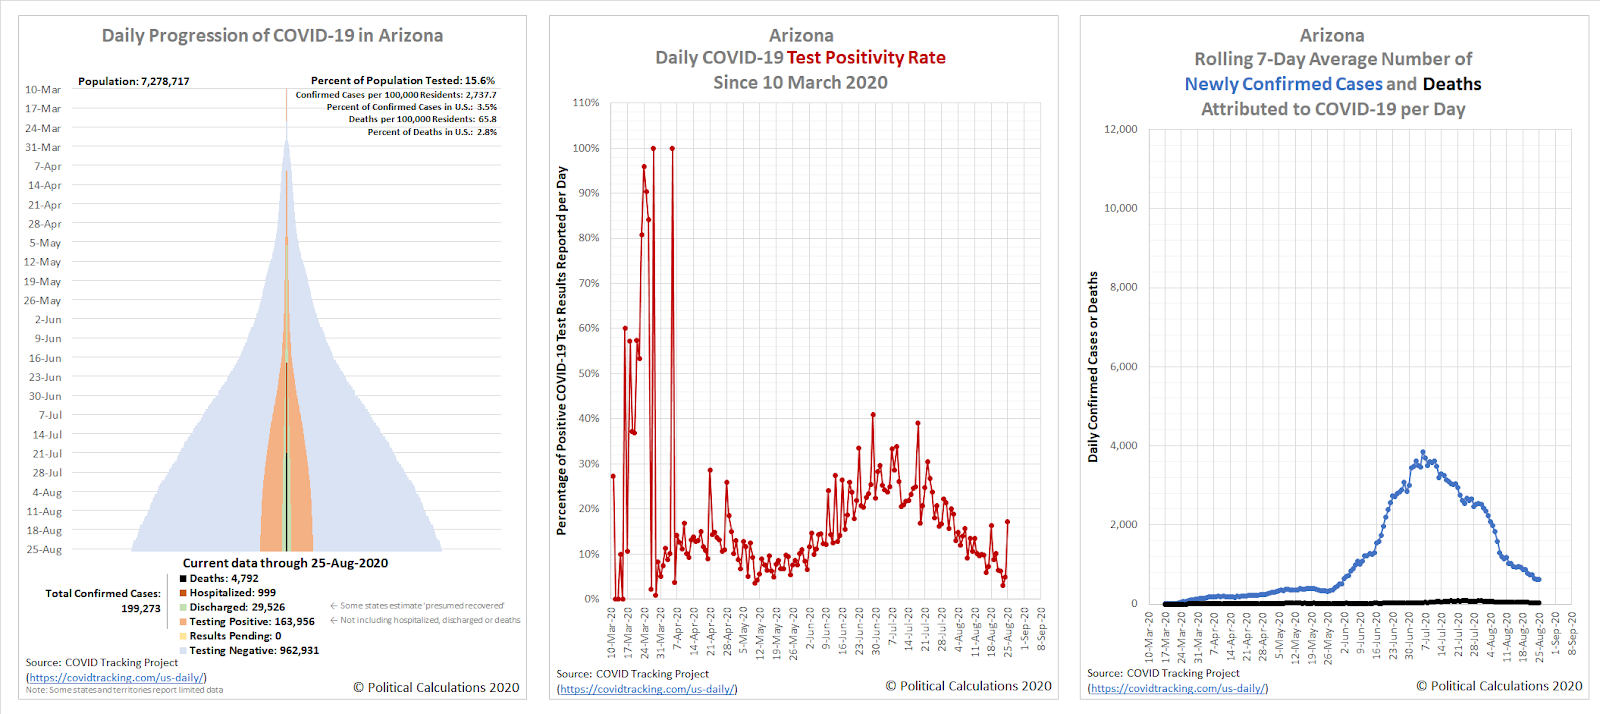 Arizona Coronavirus Daily Progression Tower Chart, Test Positivity Rate, and Daily Reported Confirmed Cases and Deaths from 10 March 2020 through 25 August 2020